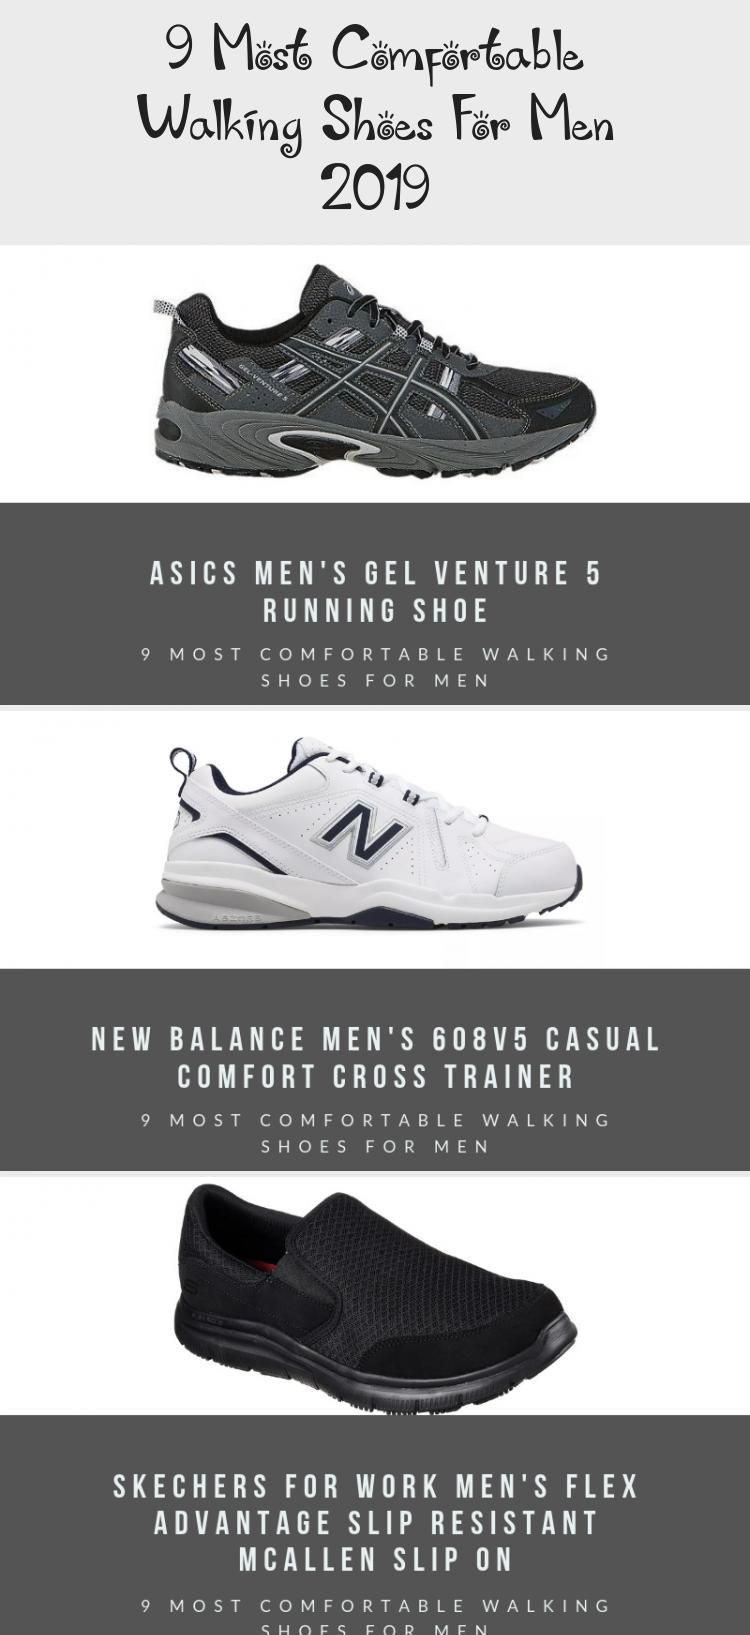 9 Most Comfortable Walking Shoes For Men 2019 | Mens walking